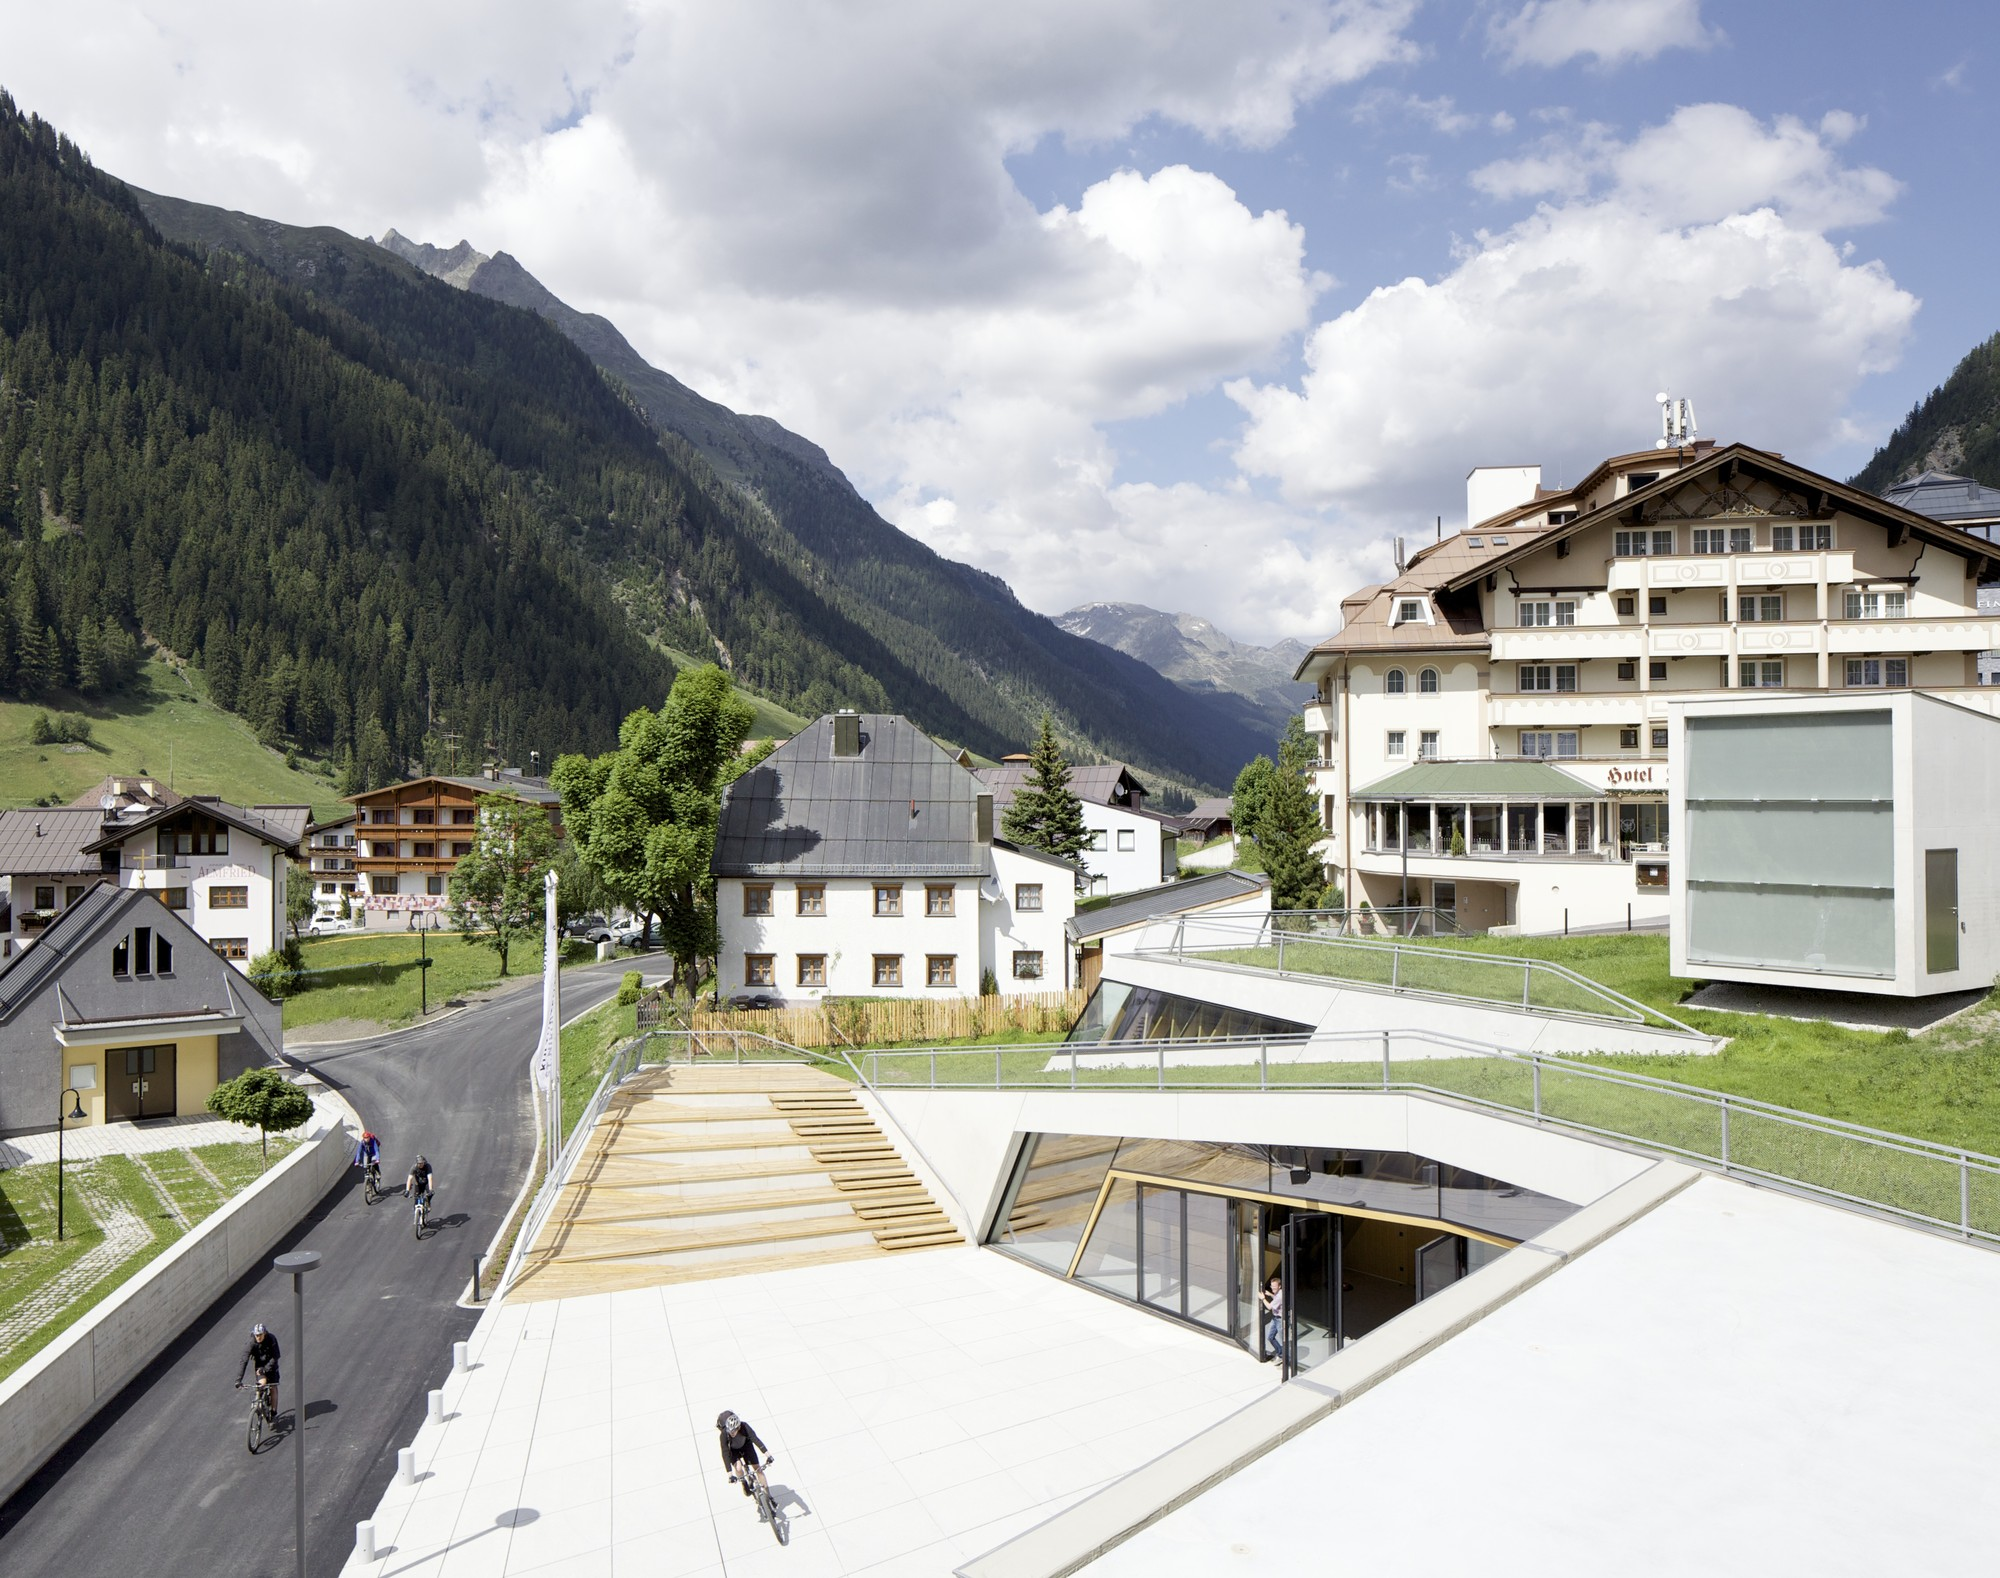 Kulturzentrum Ischgl / Parc Architekten, © David Schreyer